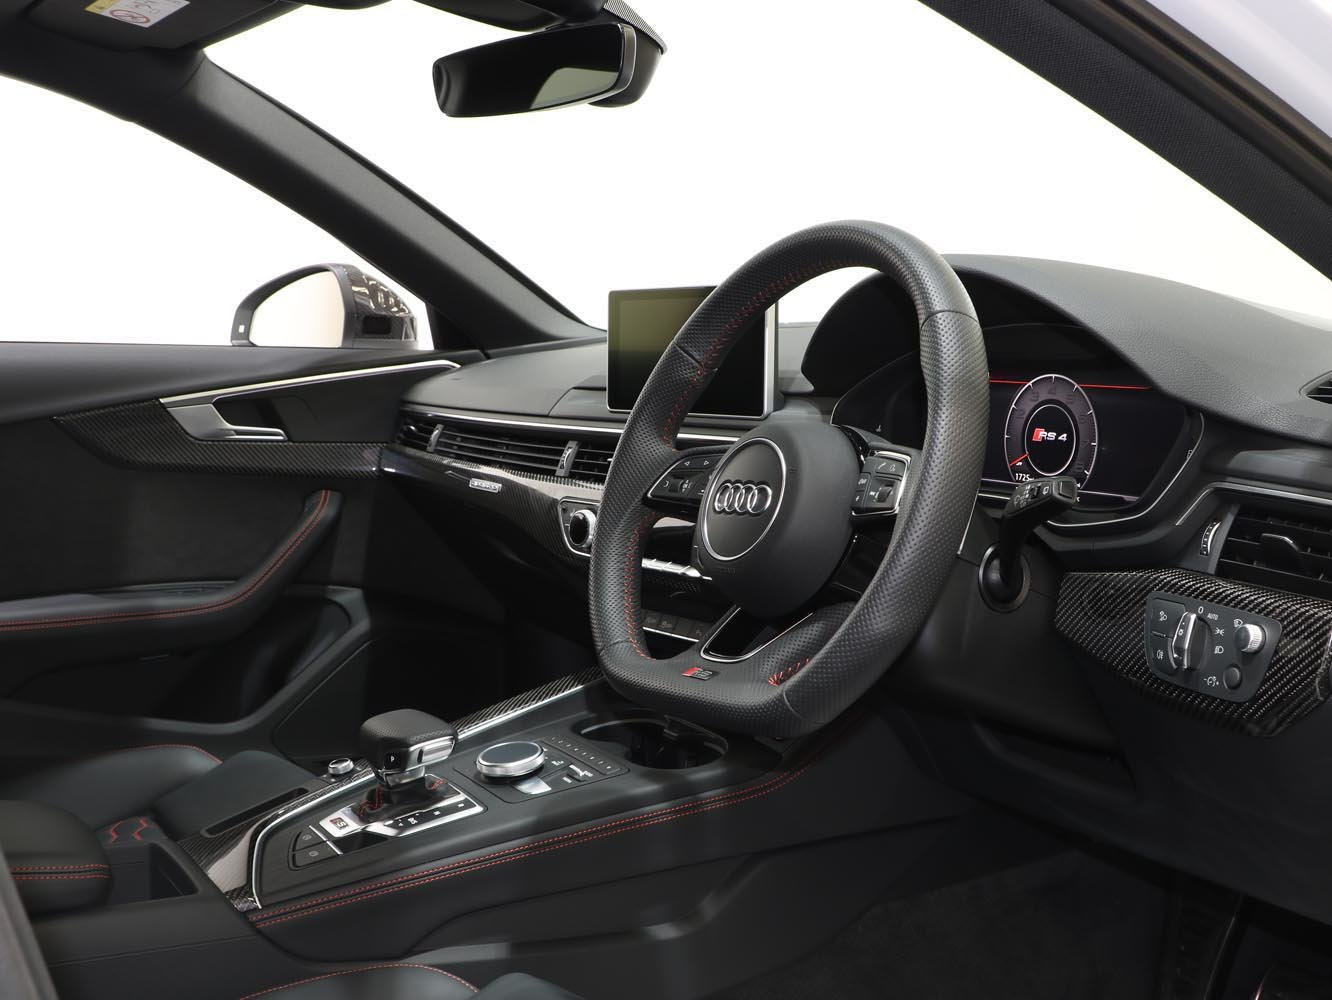 2018 18 68 AUDI RS4 CARBON EDITION 2.9 TFSI QUATTRO TIPTRONIC For Sale (picture 5 of 6)